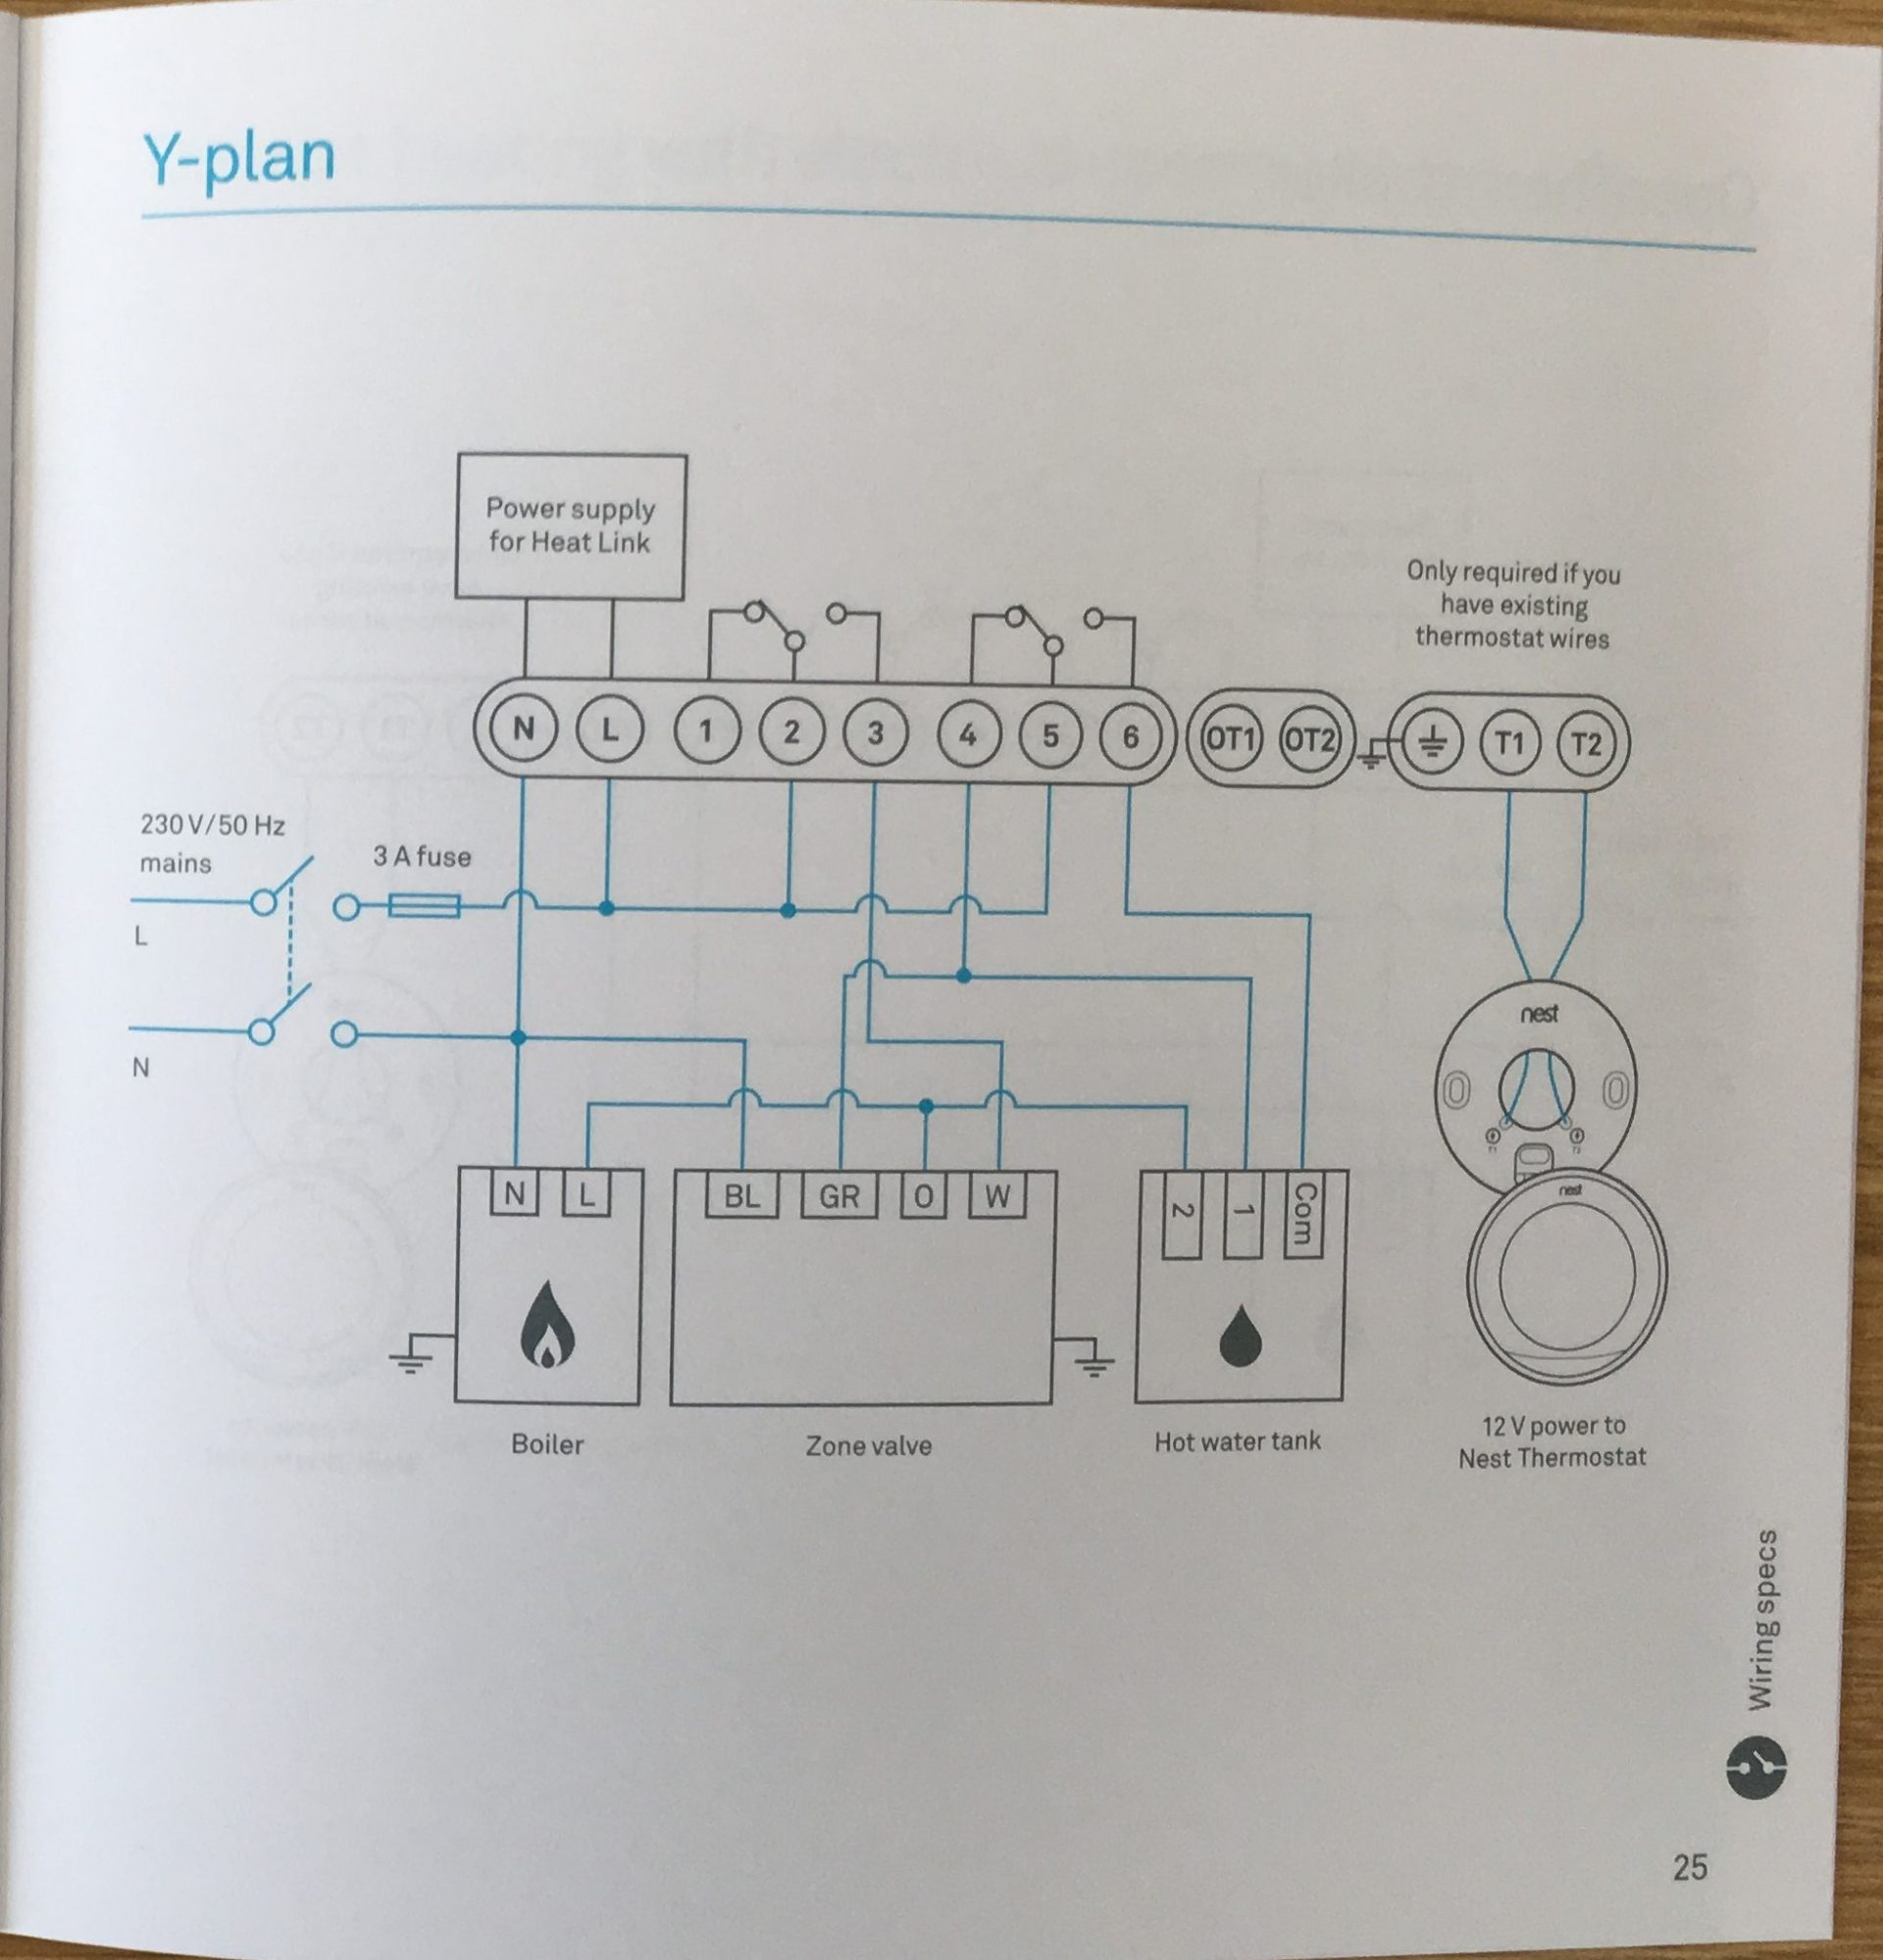 How To Install The Nest Learning Thermostat (3Rd Gen) In A Y-Plan - My Nest Wiring Diagram